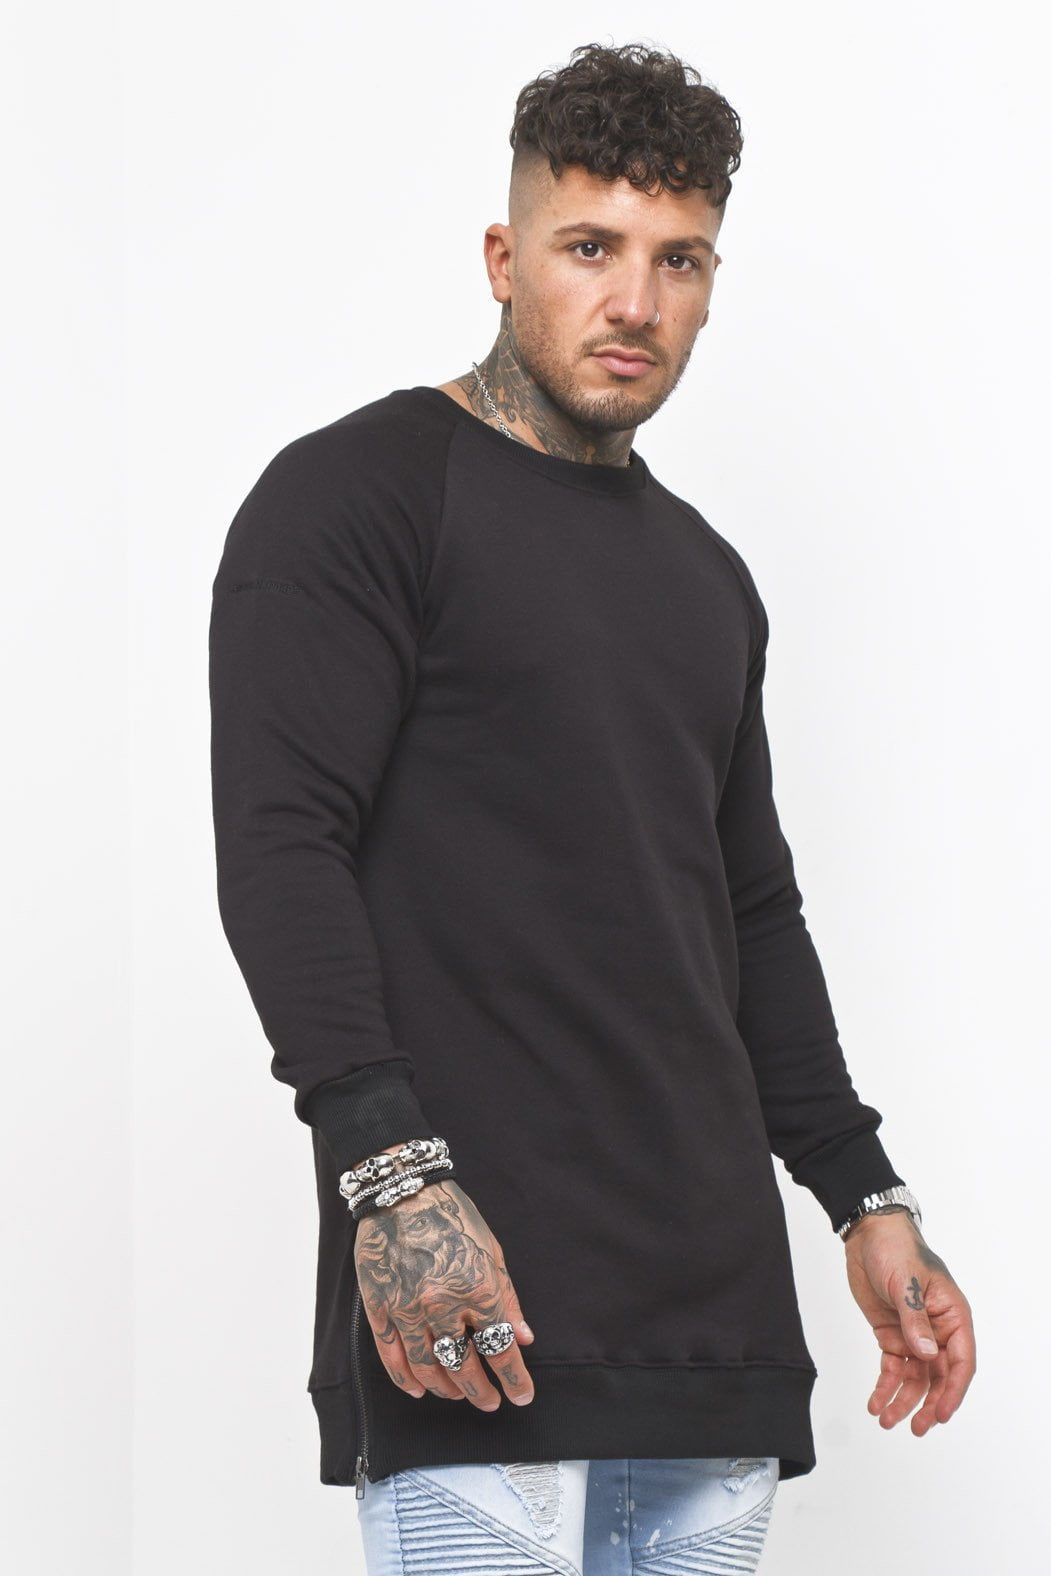 Liquor n Poker - Curved Hem Zip Sweater in Black - Liquor N Poker  Liquor N Poker